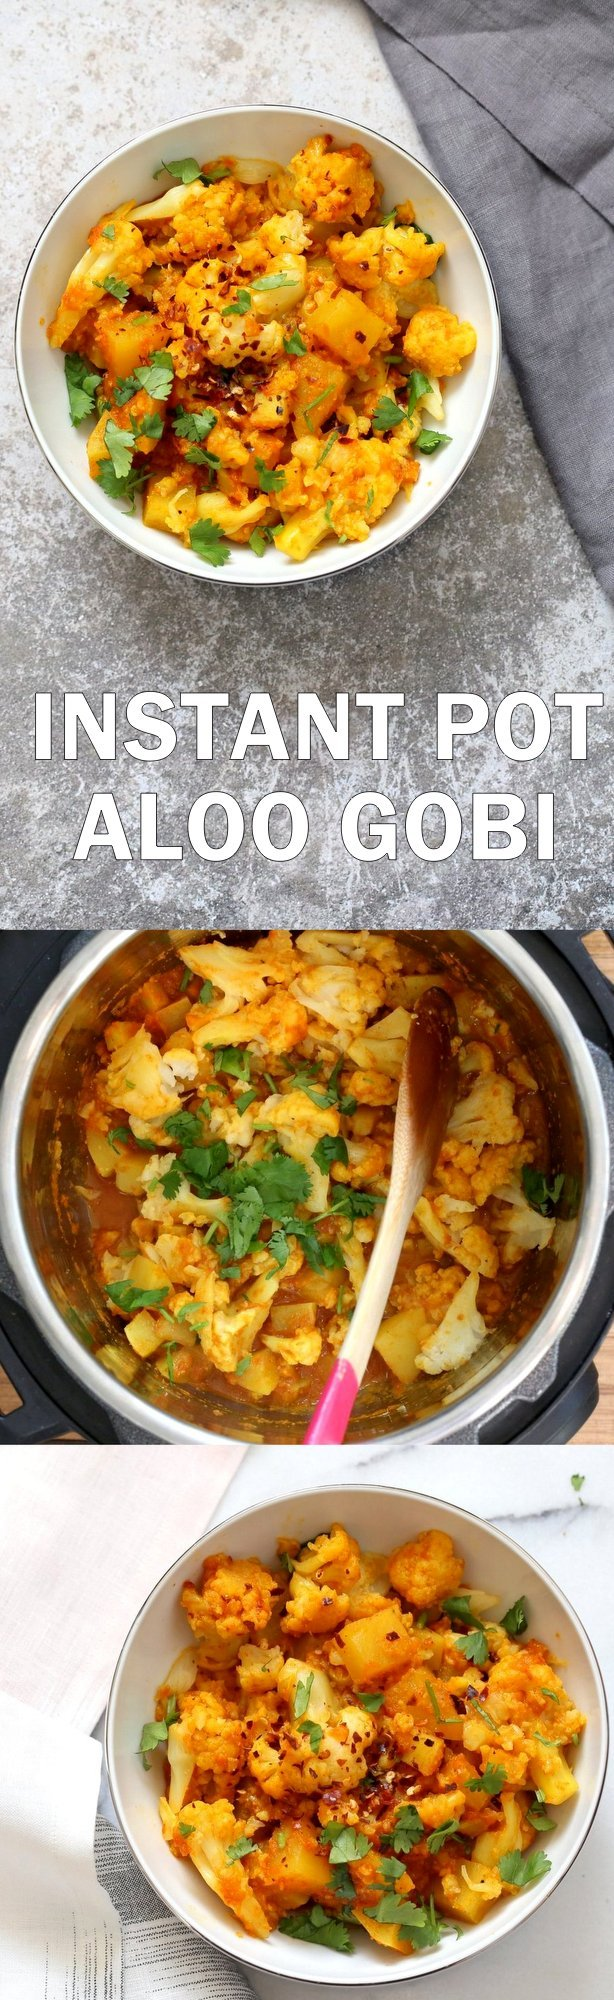 Instant Pot Aloo Gobi - Curried Potato Cauliflower. 1 Pot Aloo Gobhi. Indian Gobi Aloo Masala. Vegan Gluten-free Soy-free Nut-free Recipe | VeganRicha.com